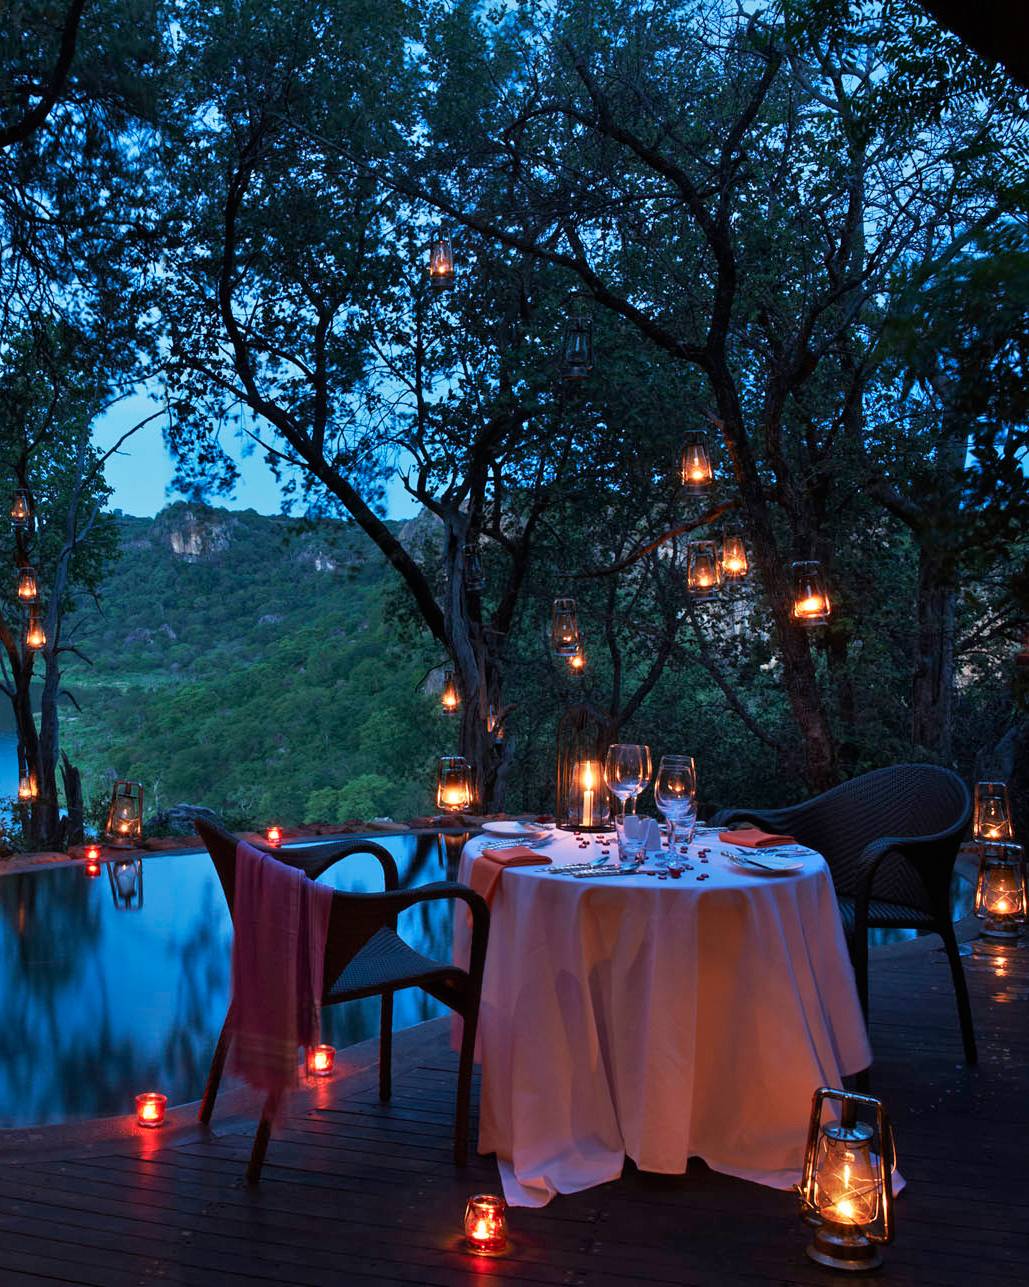 singita-pamushana-lodge-africa-wedding-venue-dinner-0815.jpg